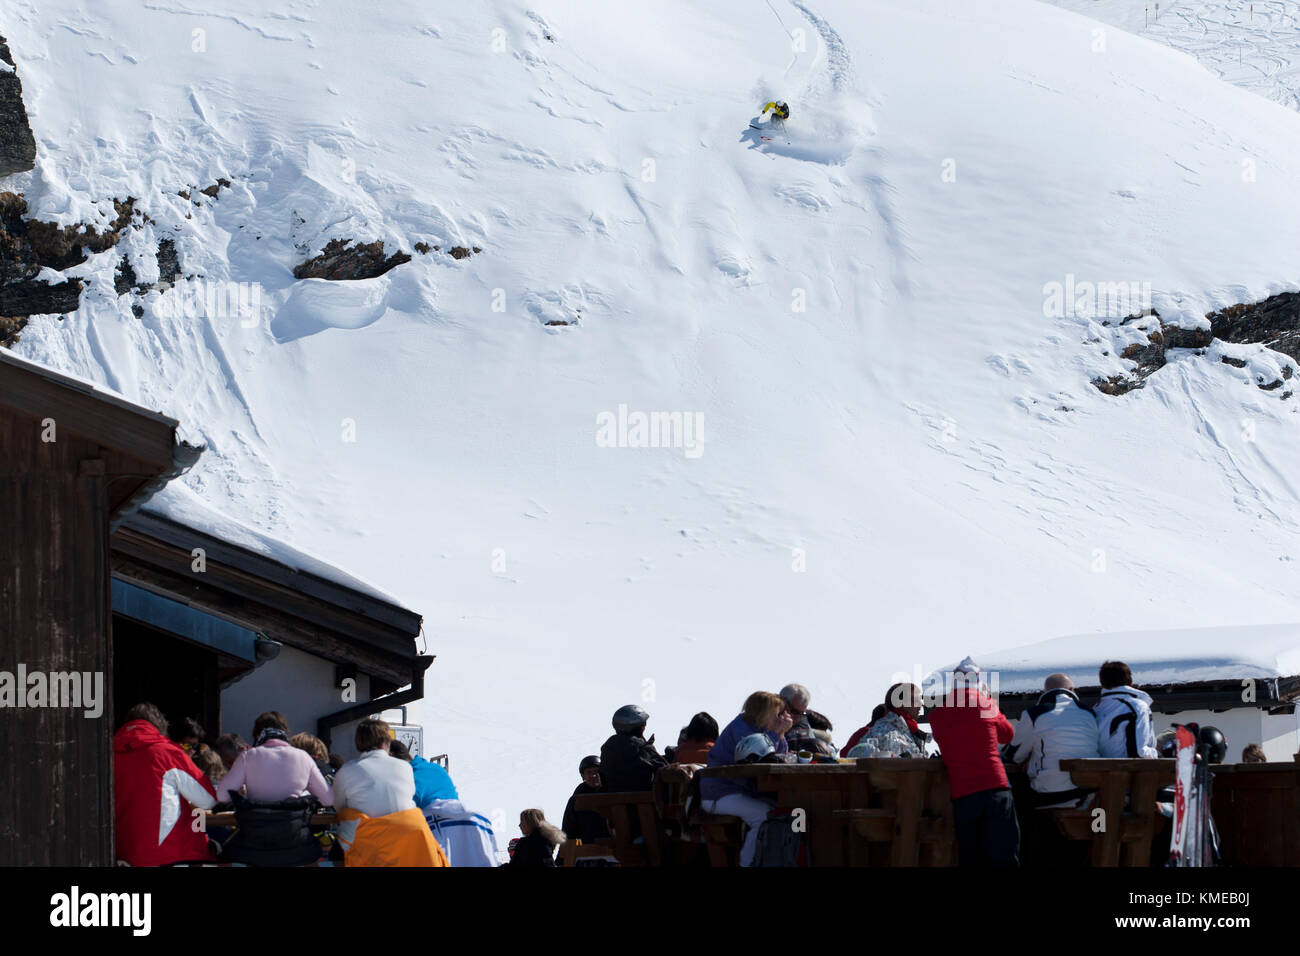 Man skiing as onlookers watching from lodge,Corvatsch,Switzerland - Stock Image